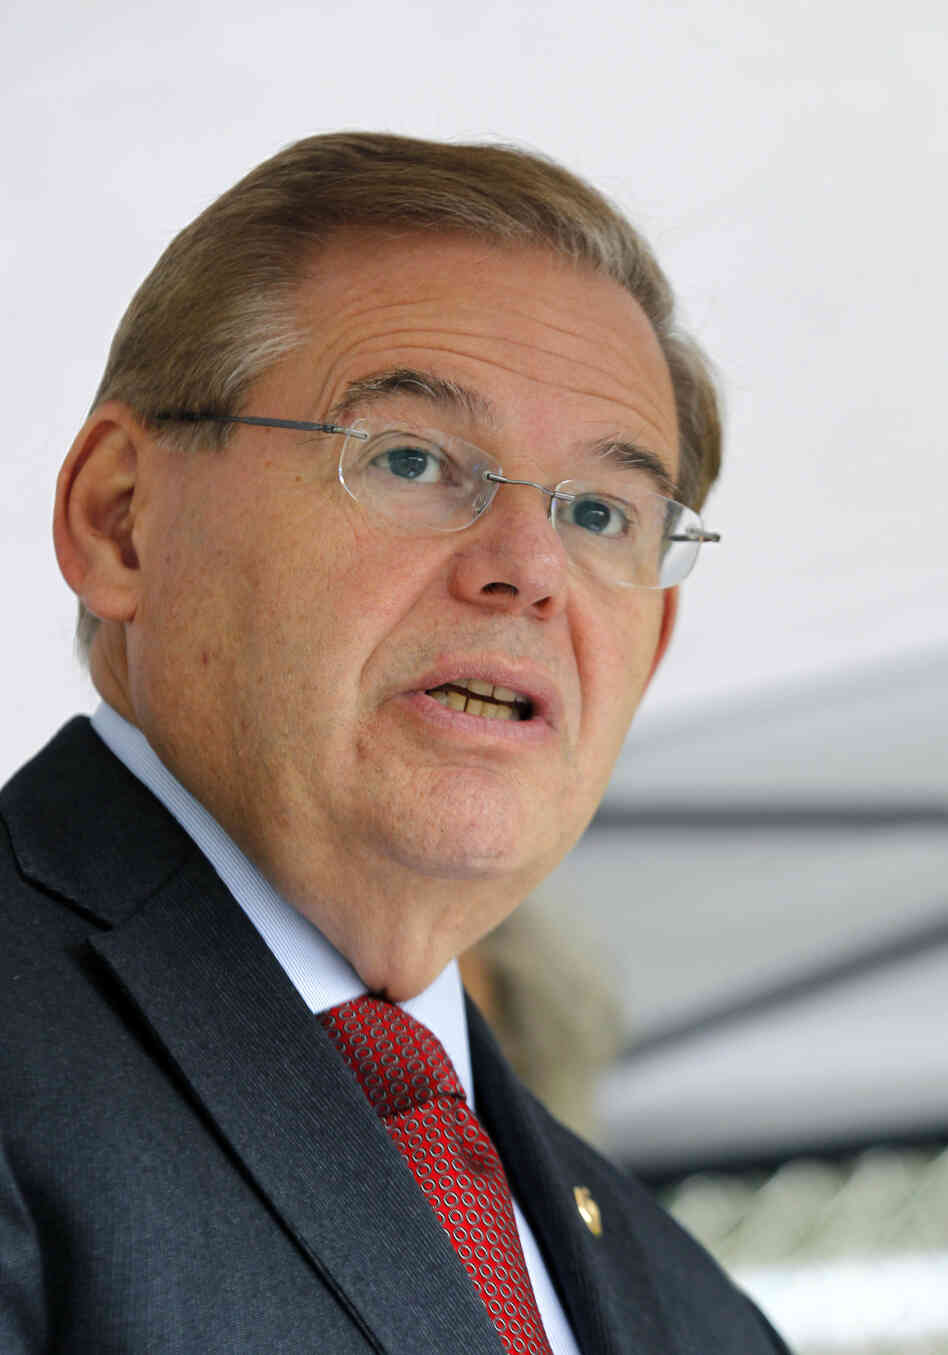 Sen. Robert Menendez, D-N.J., and 20 House members make up the Congressional Hispanic Caucus. Here, Menendez speaks in September in Sayreville, N.J.